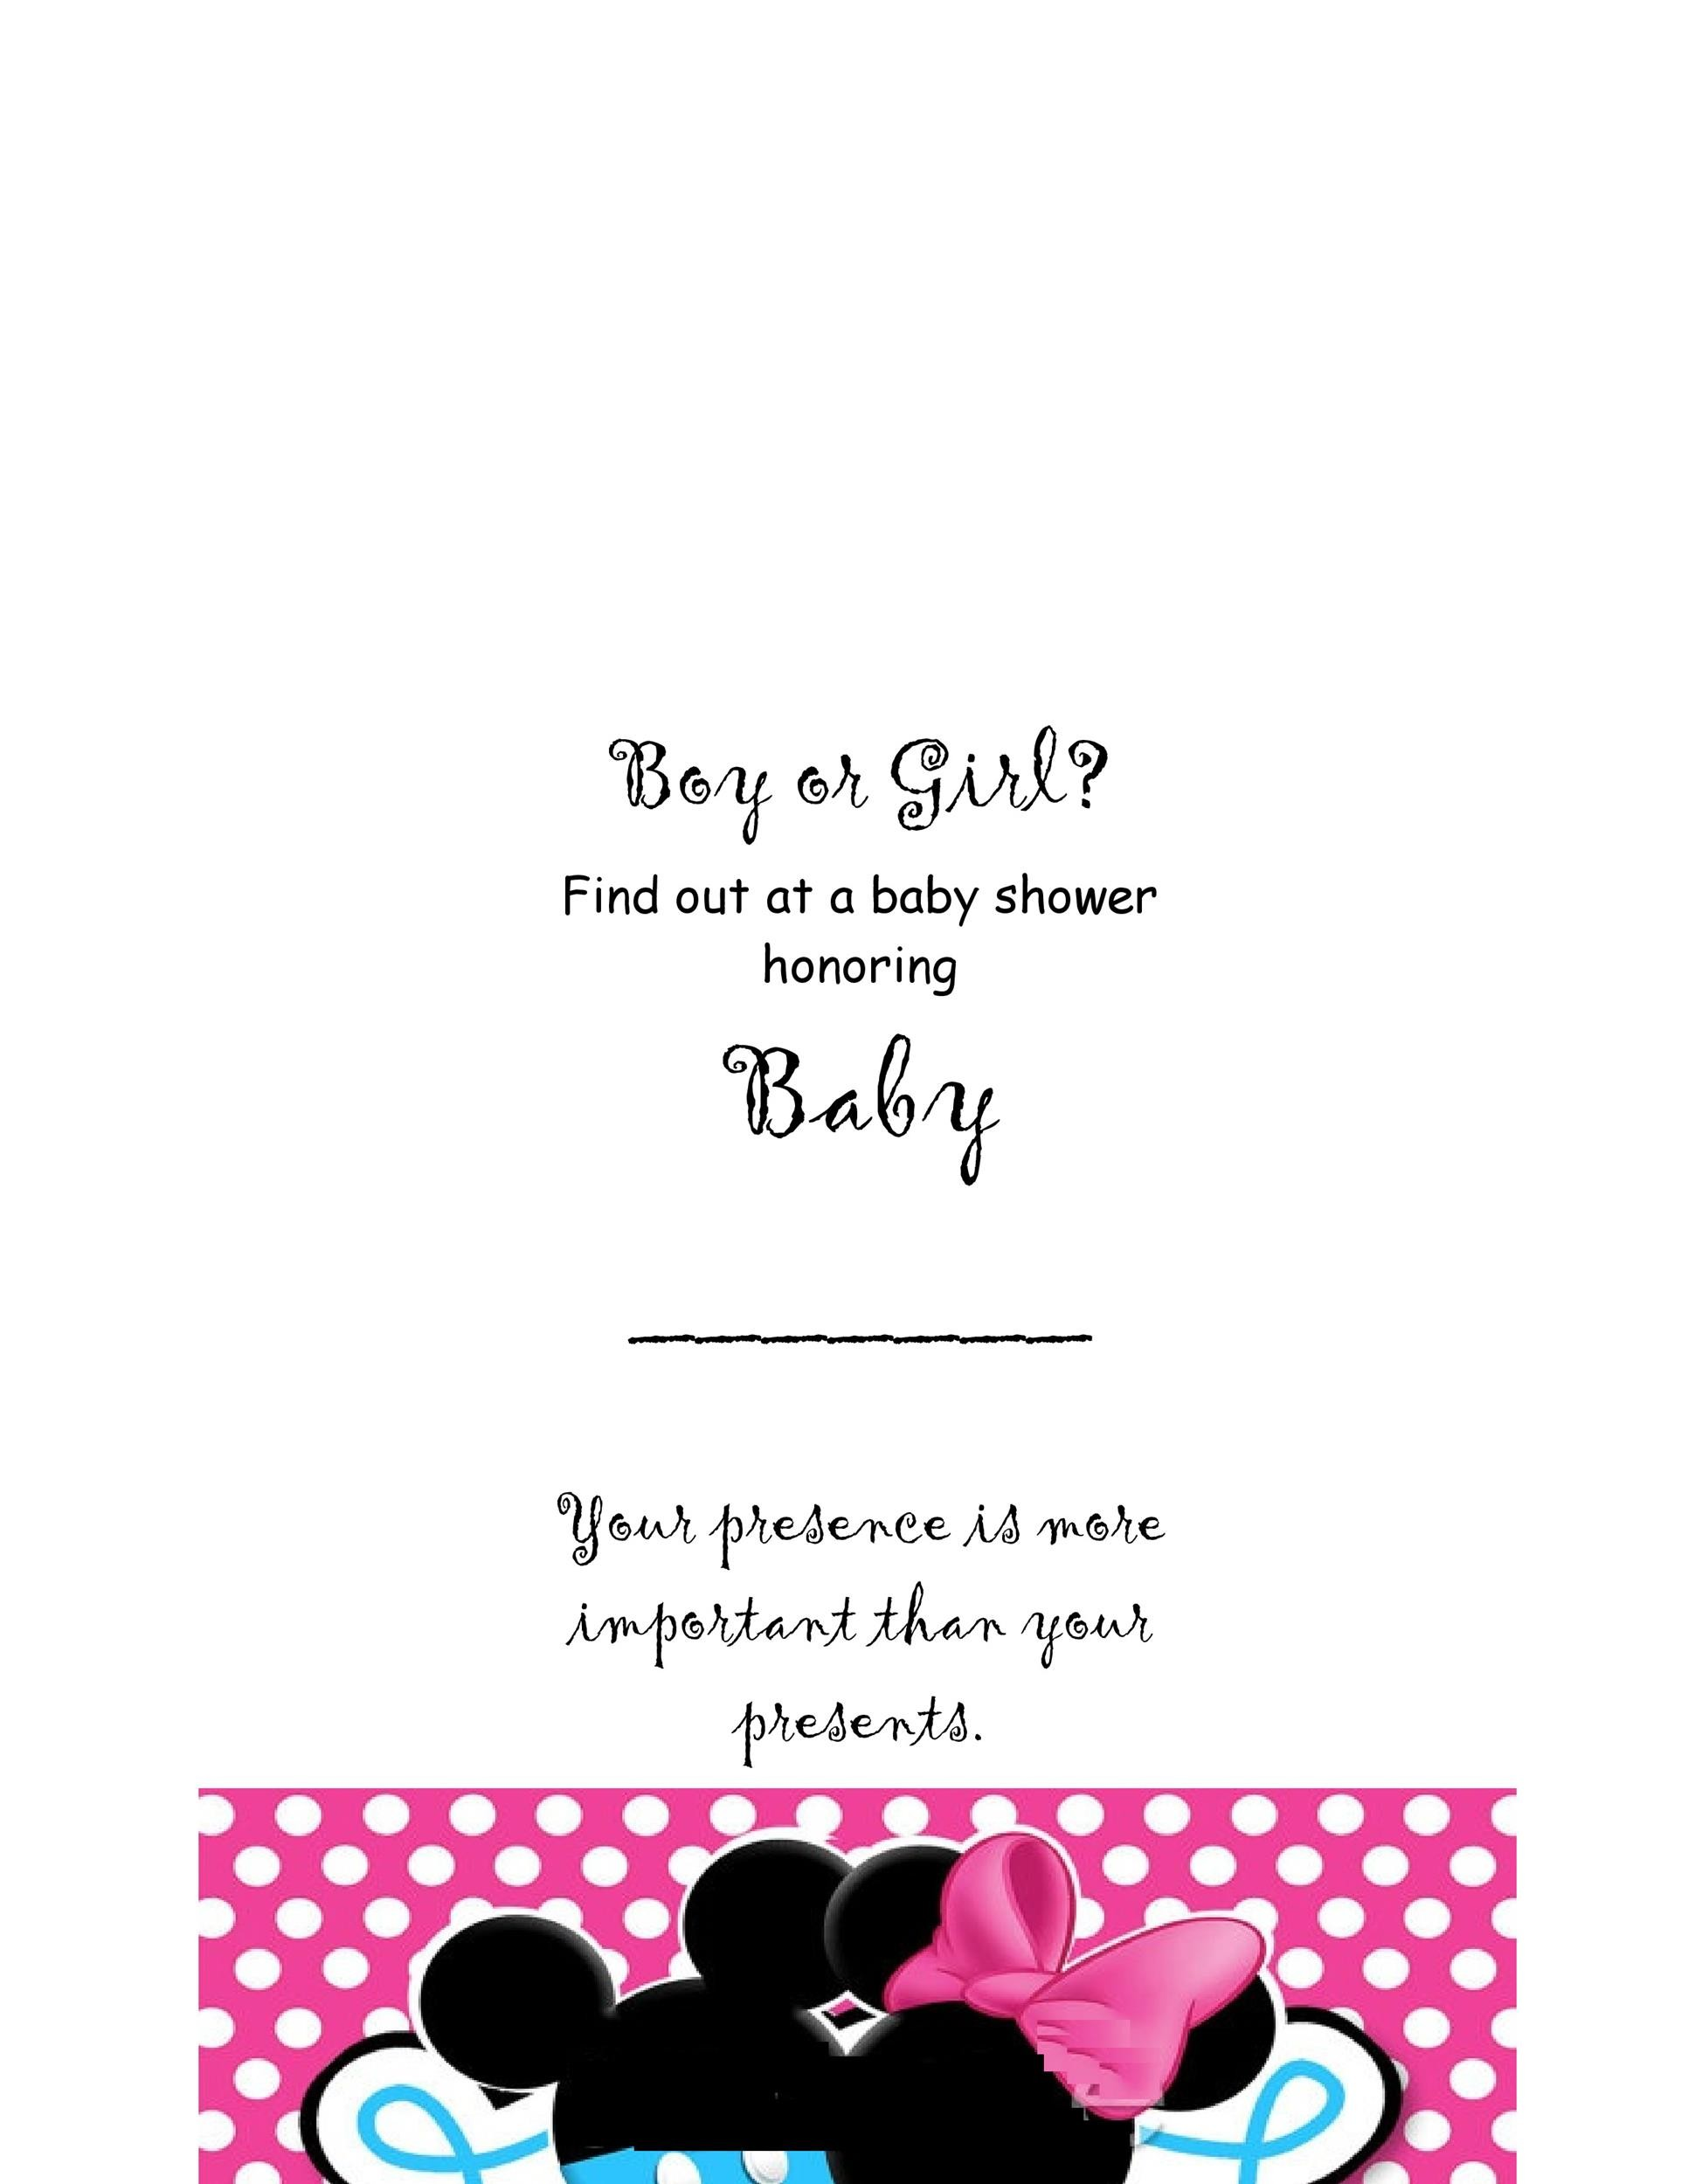 photo regarding Free Printable Gender Reveal Invitations called 17 Free of charge Gender Make clear Invitation Templates ᐅ Template Lab